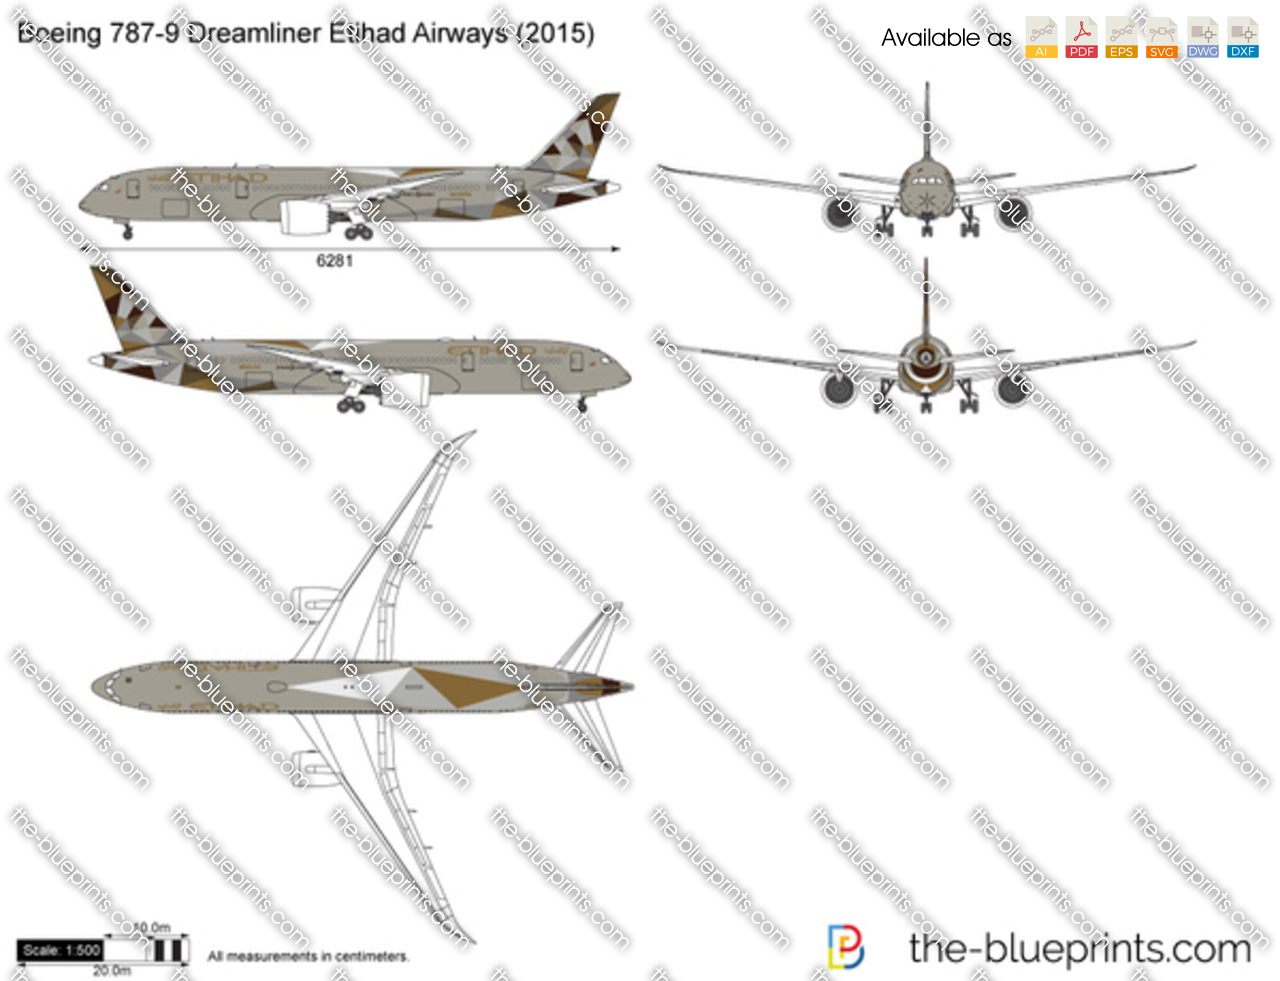 Boeing 787-9 Dreamliner Etihad Airways 2019